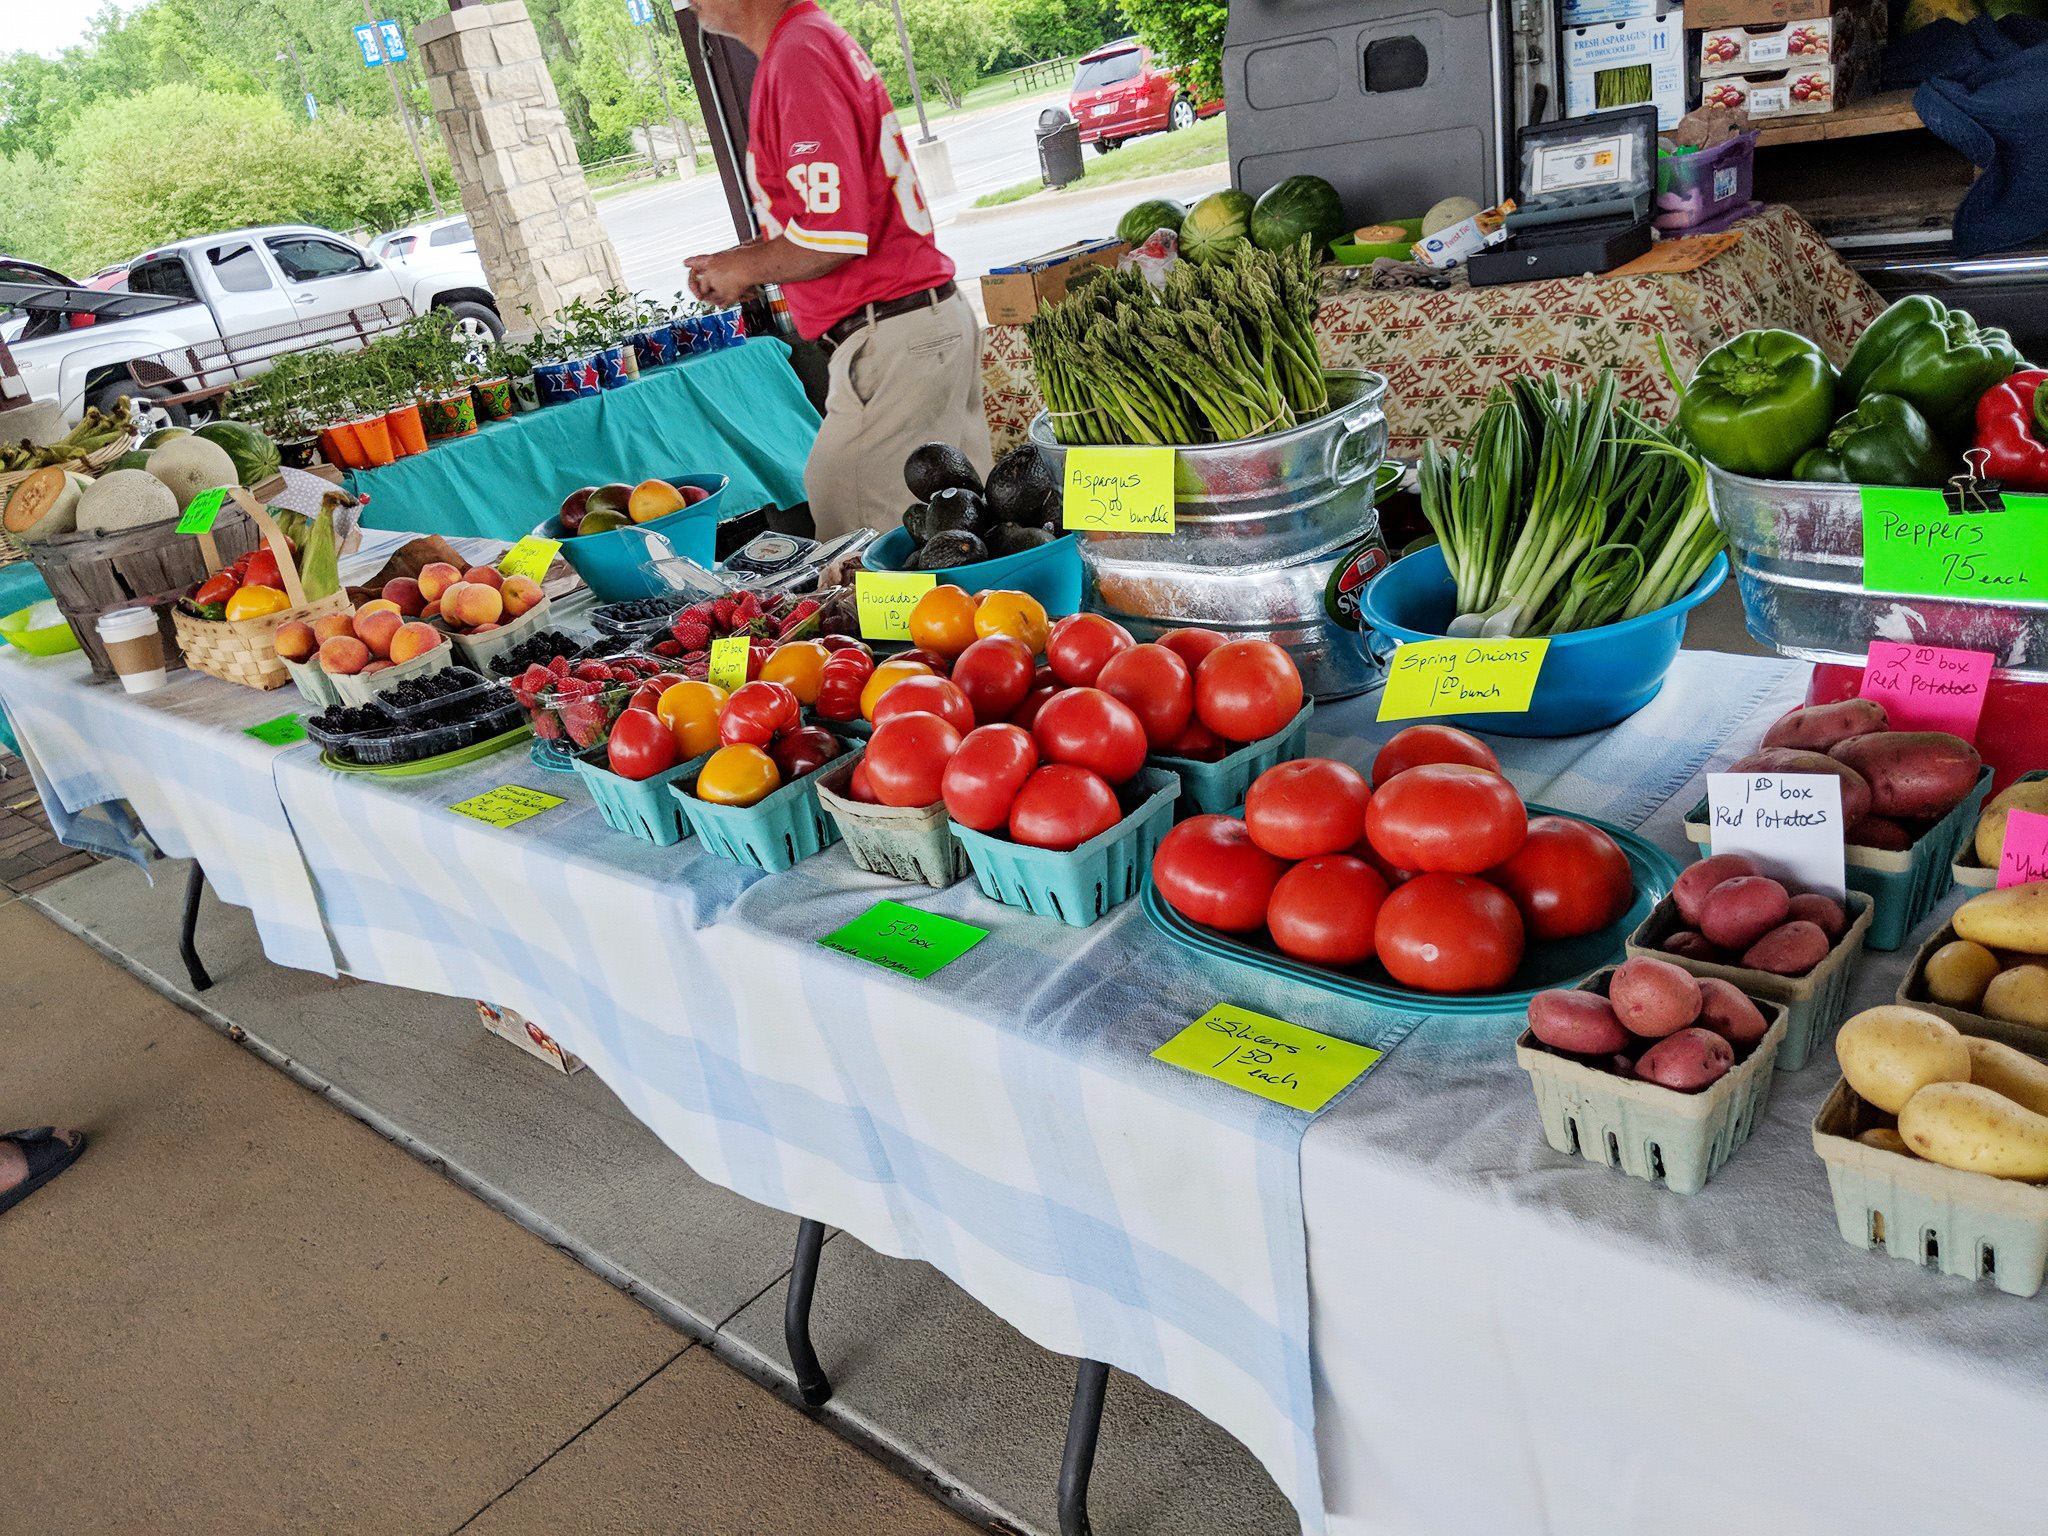 Display of produce available at the Farmers' Market